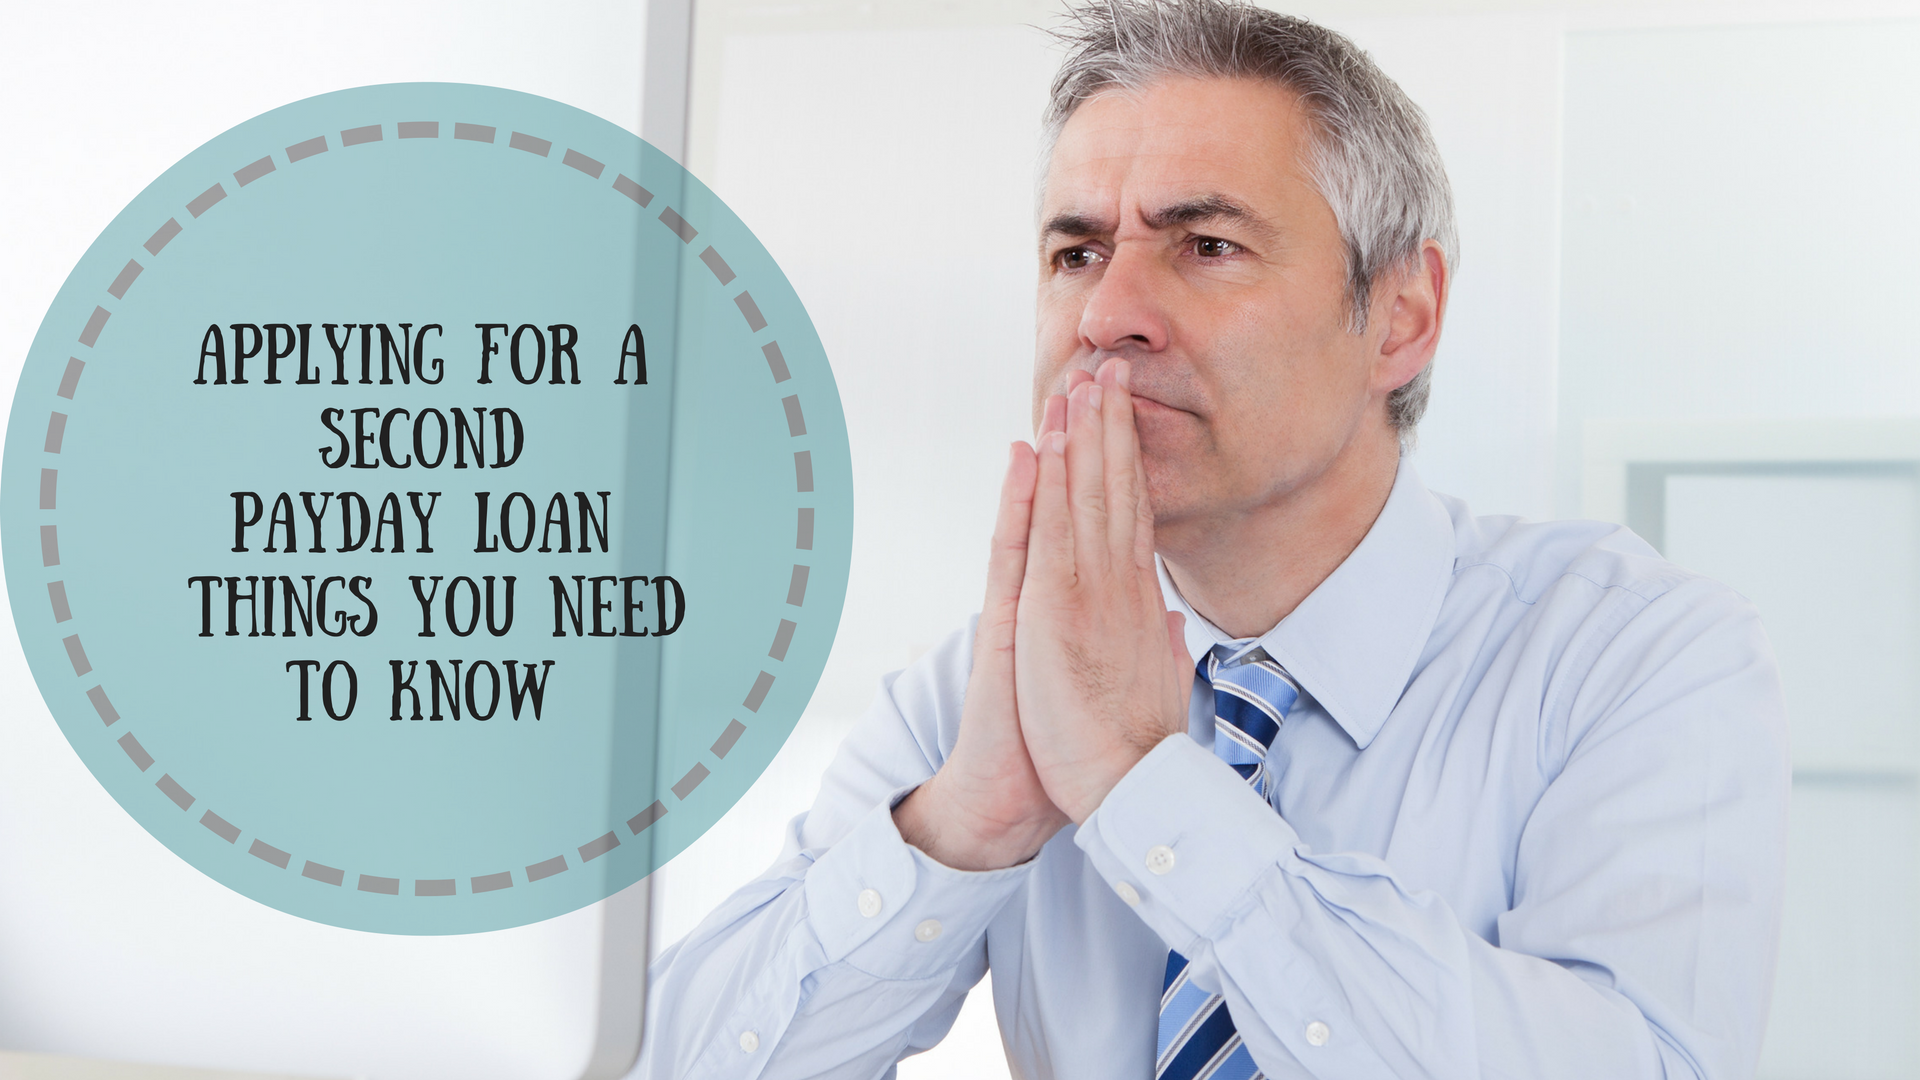 Applying for a Second Payday Loan: Things You Need to Know